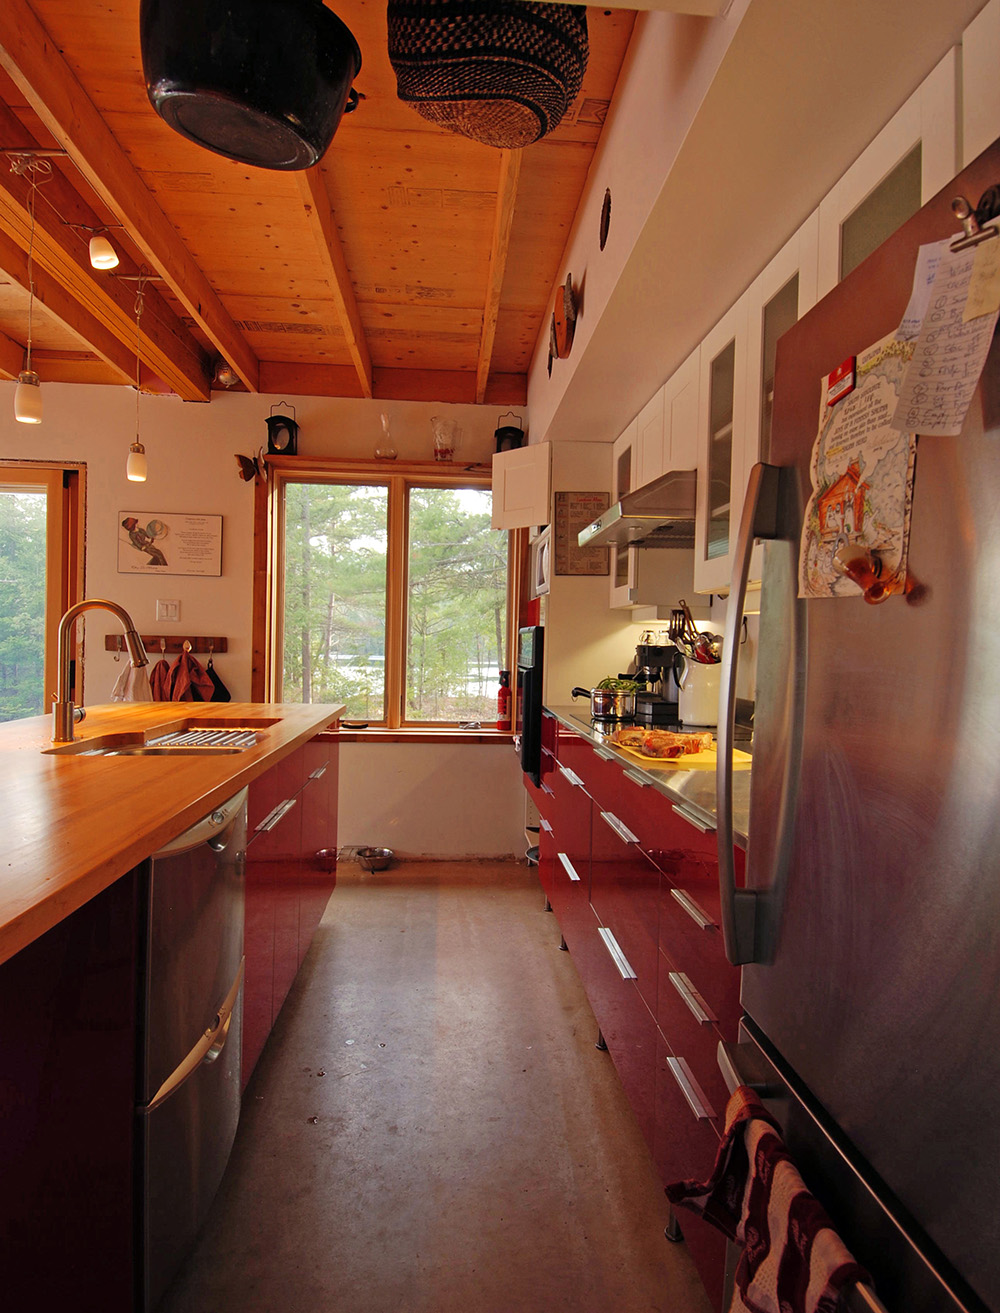 Minimalist cottage kitchen with exposed structure ceiling. Wood and Stainless steel countertops.